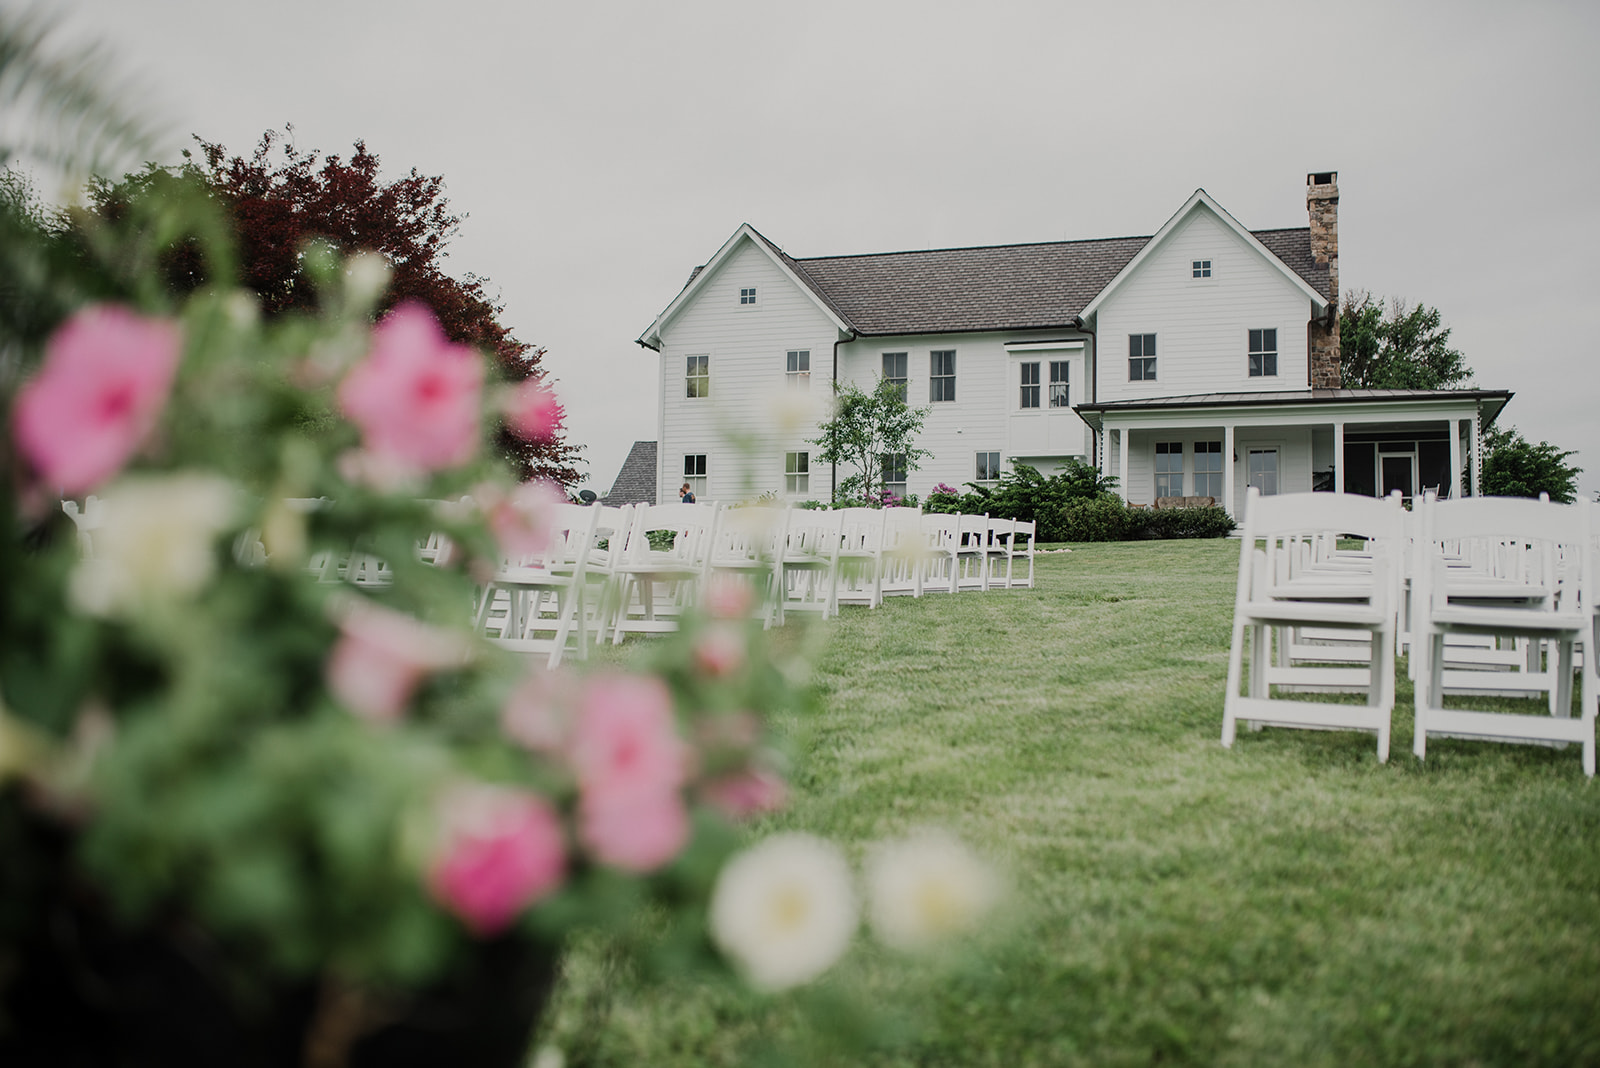 The house at Blue Hill Farm in Waterford, VA sits away from the outdoor wedding ceremony site.